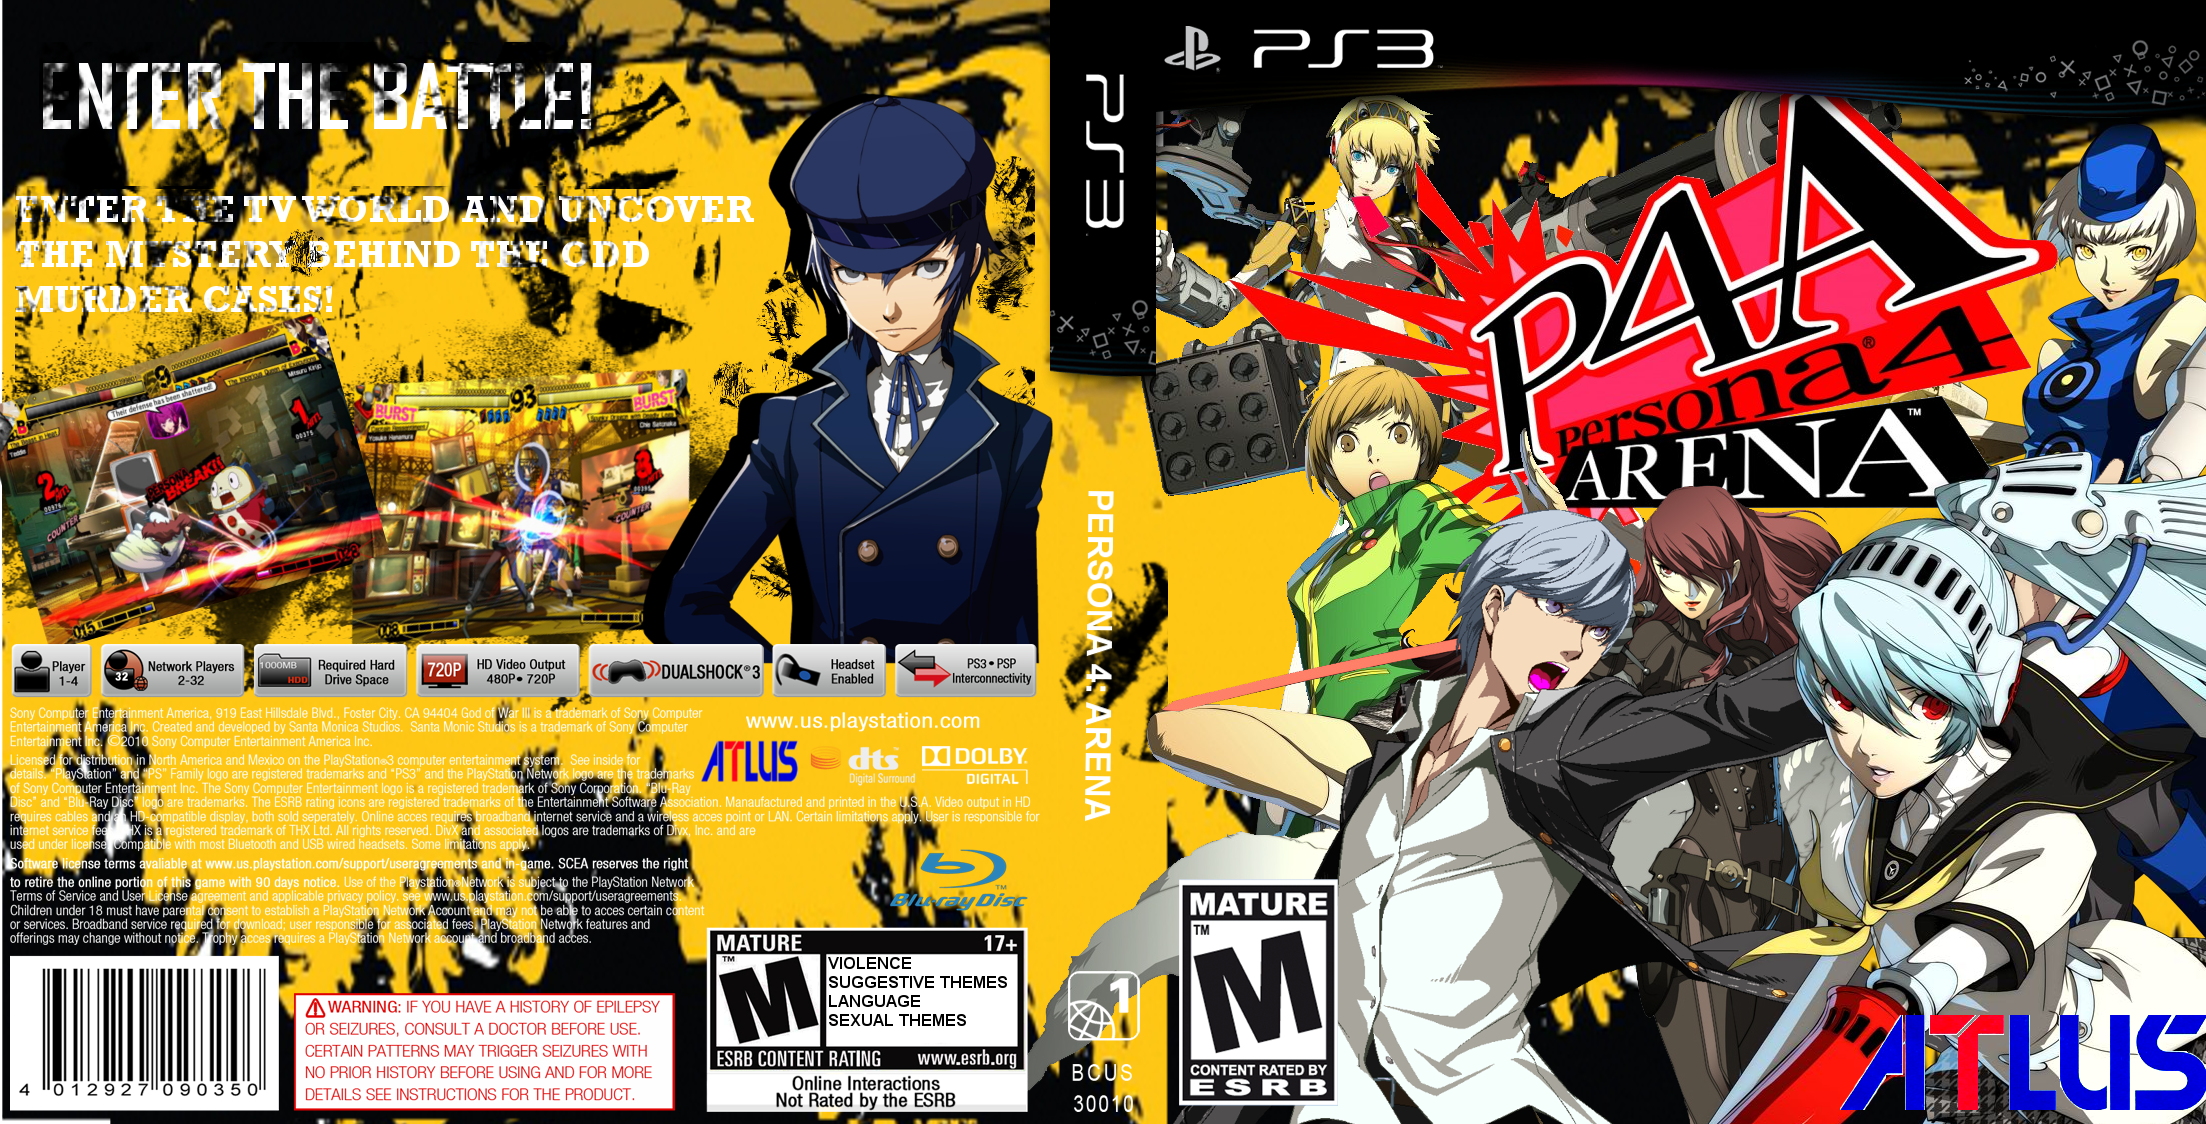 Persona 4 Arena box cover